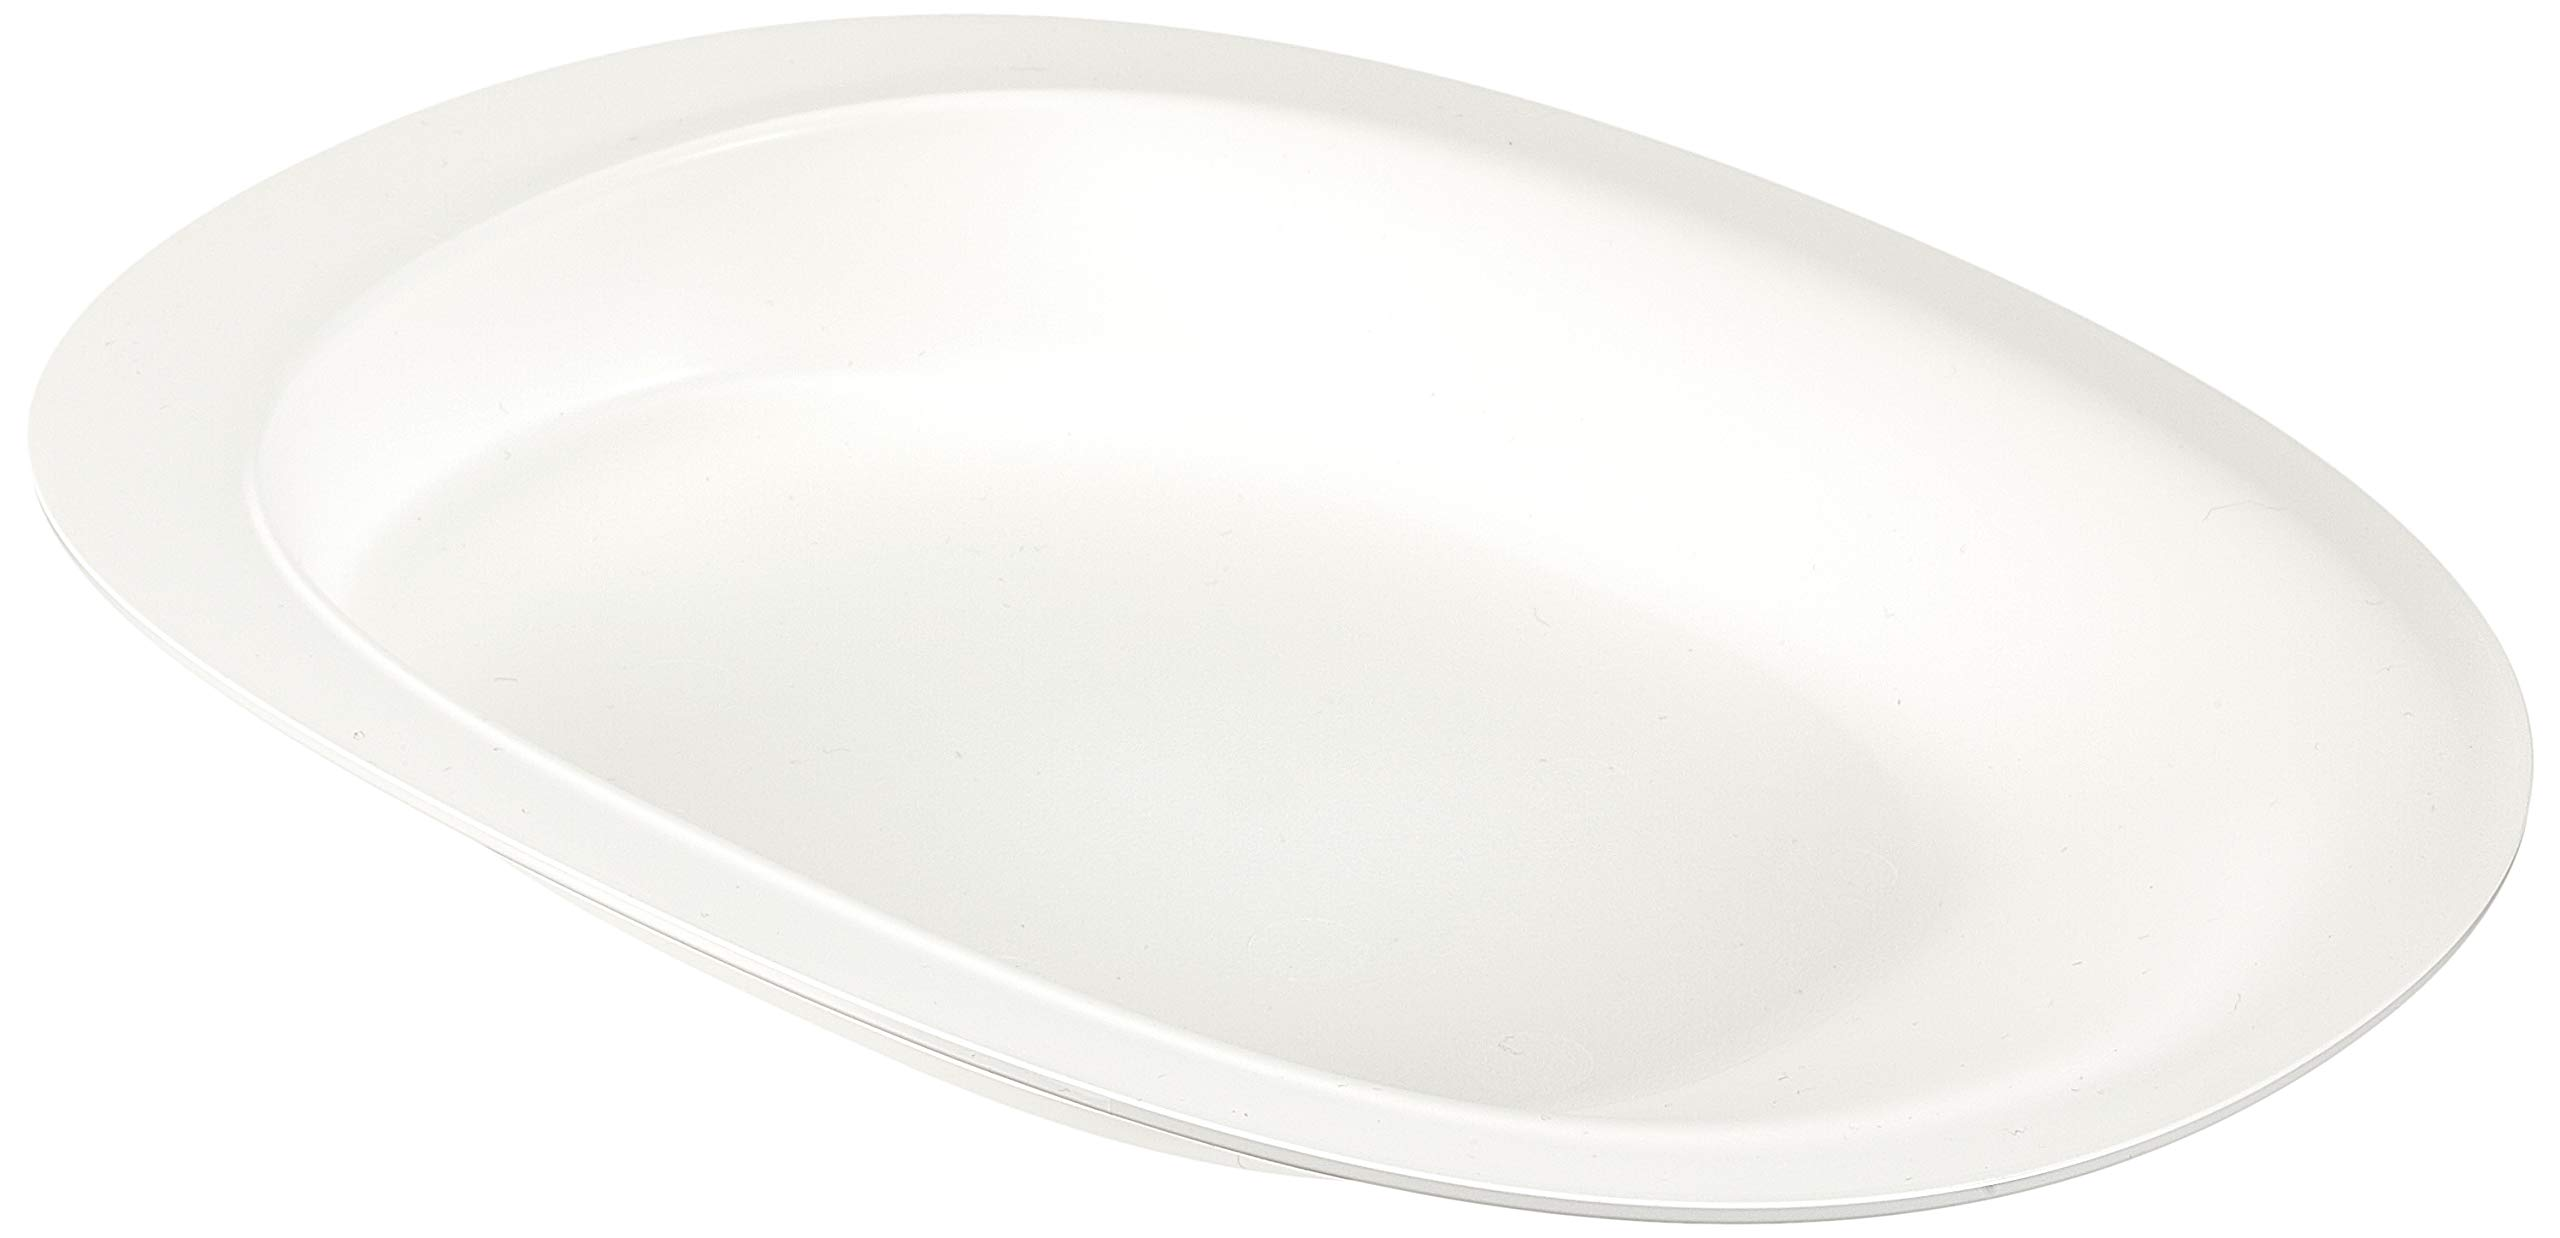 Able2 Henro PR65553 Plate 28 x 20 cm White by A'BLE